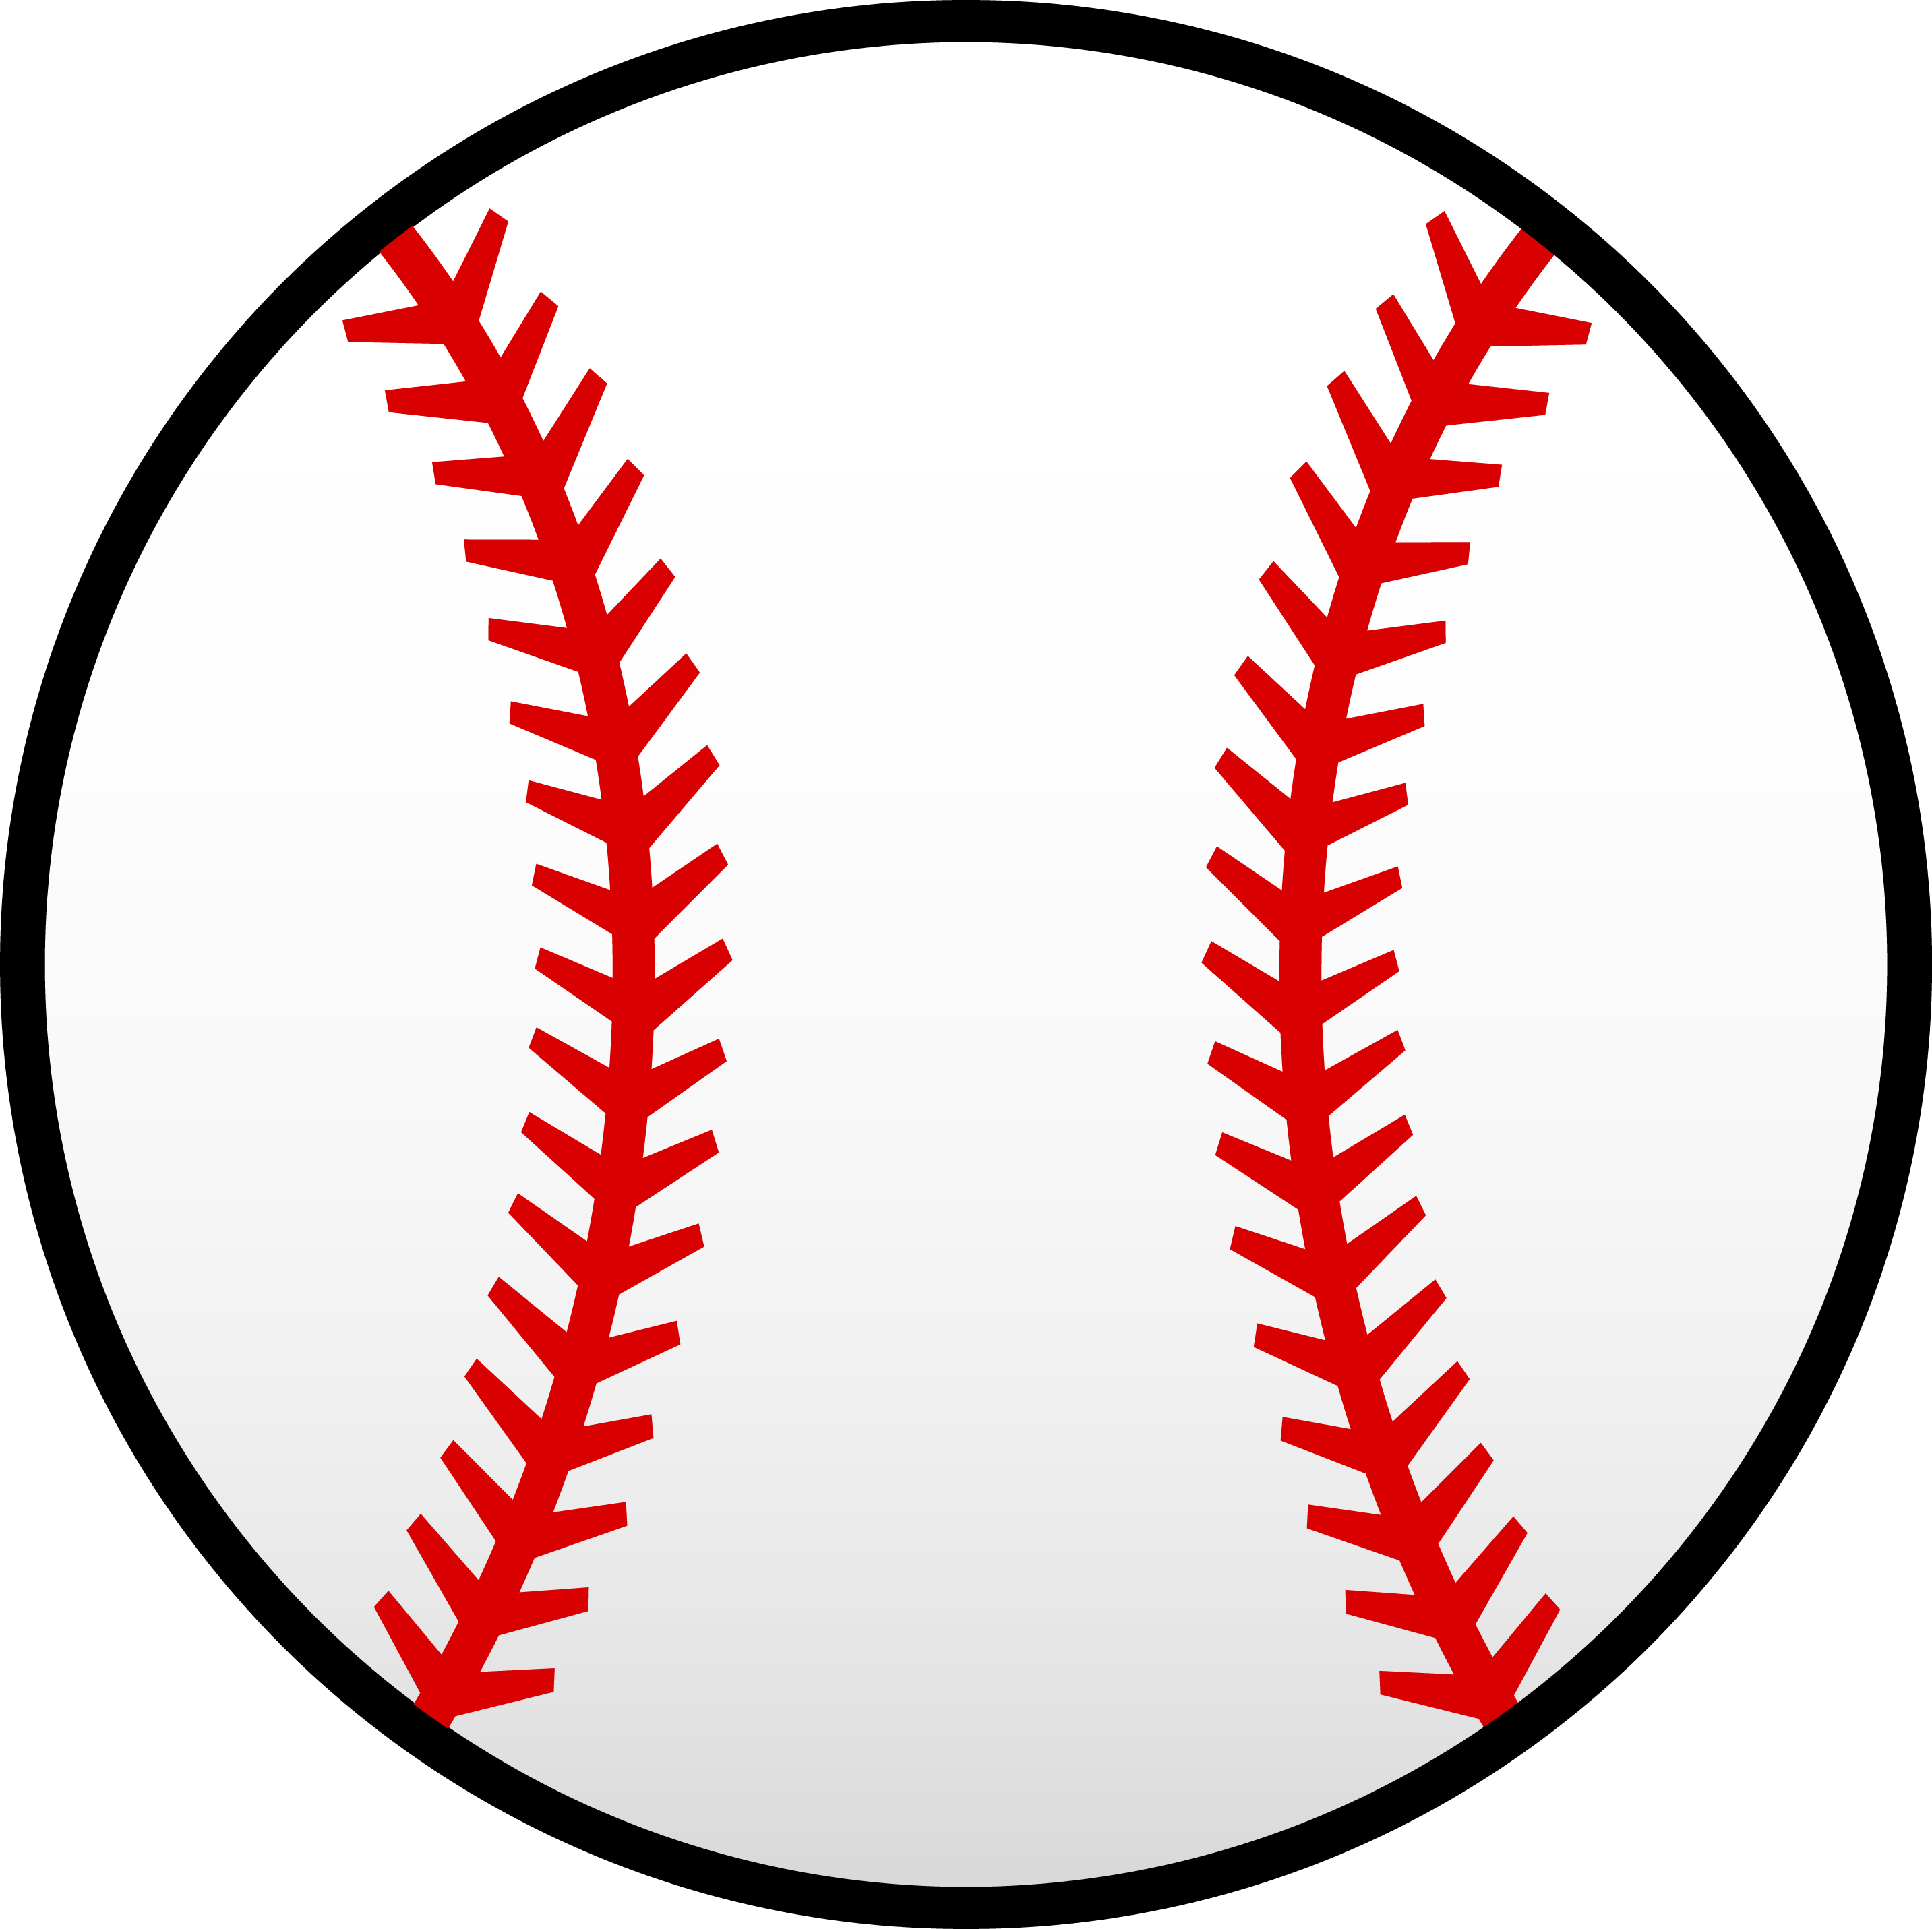 Stitch clipart softball. White baseball with red